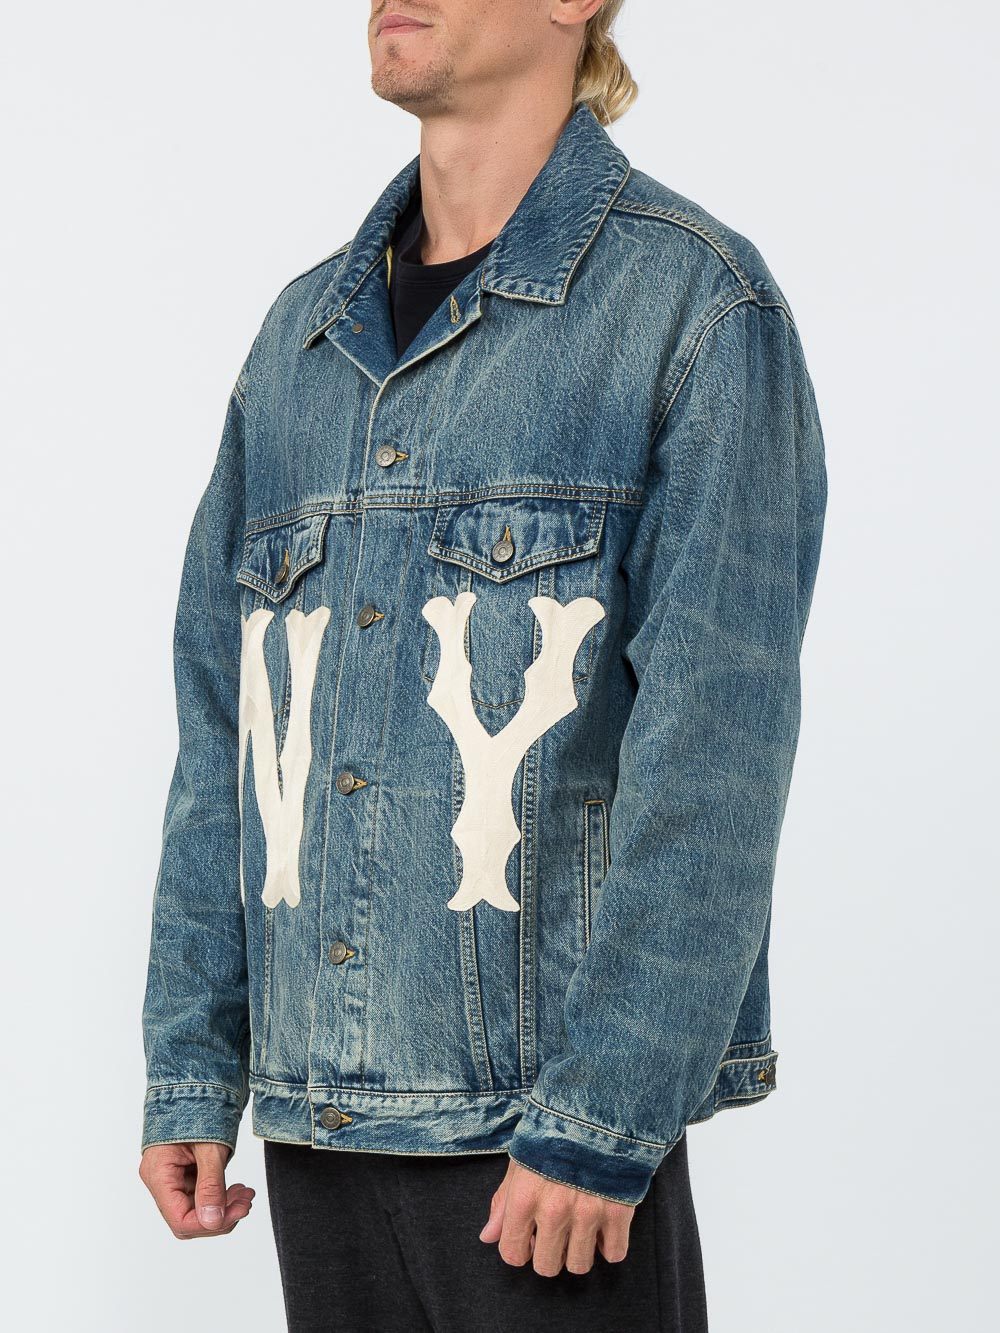 319ca245935ee Blue Men s Denim Jacket With NY Yankees  Patch by Gucci buy at ...